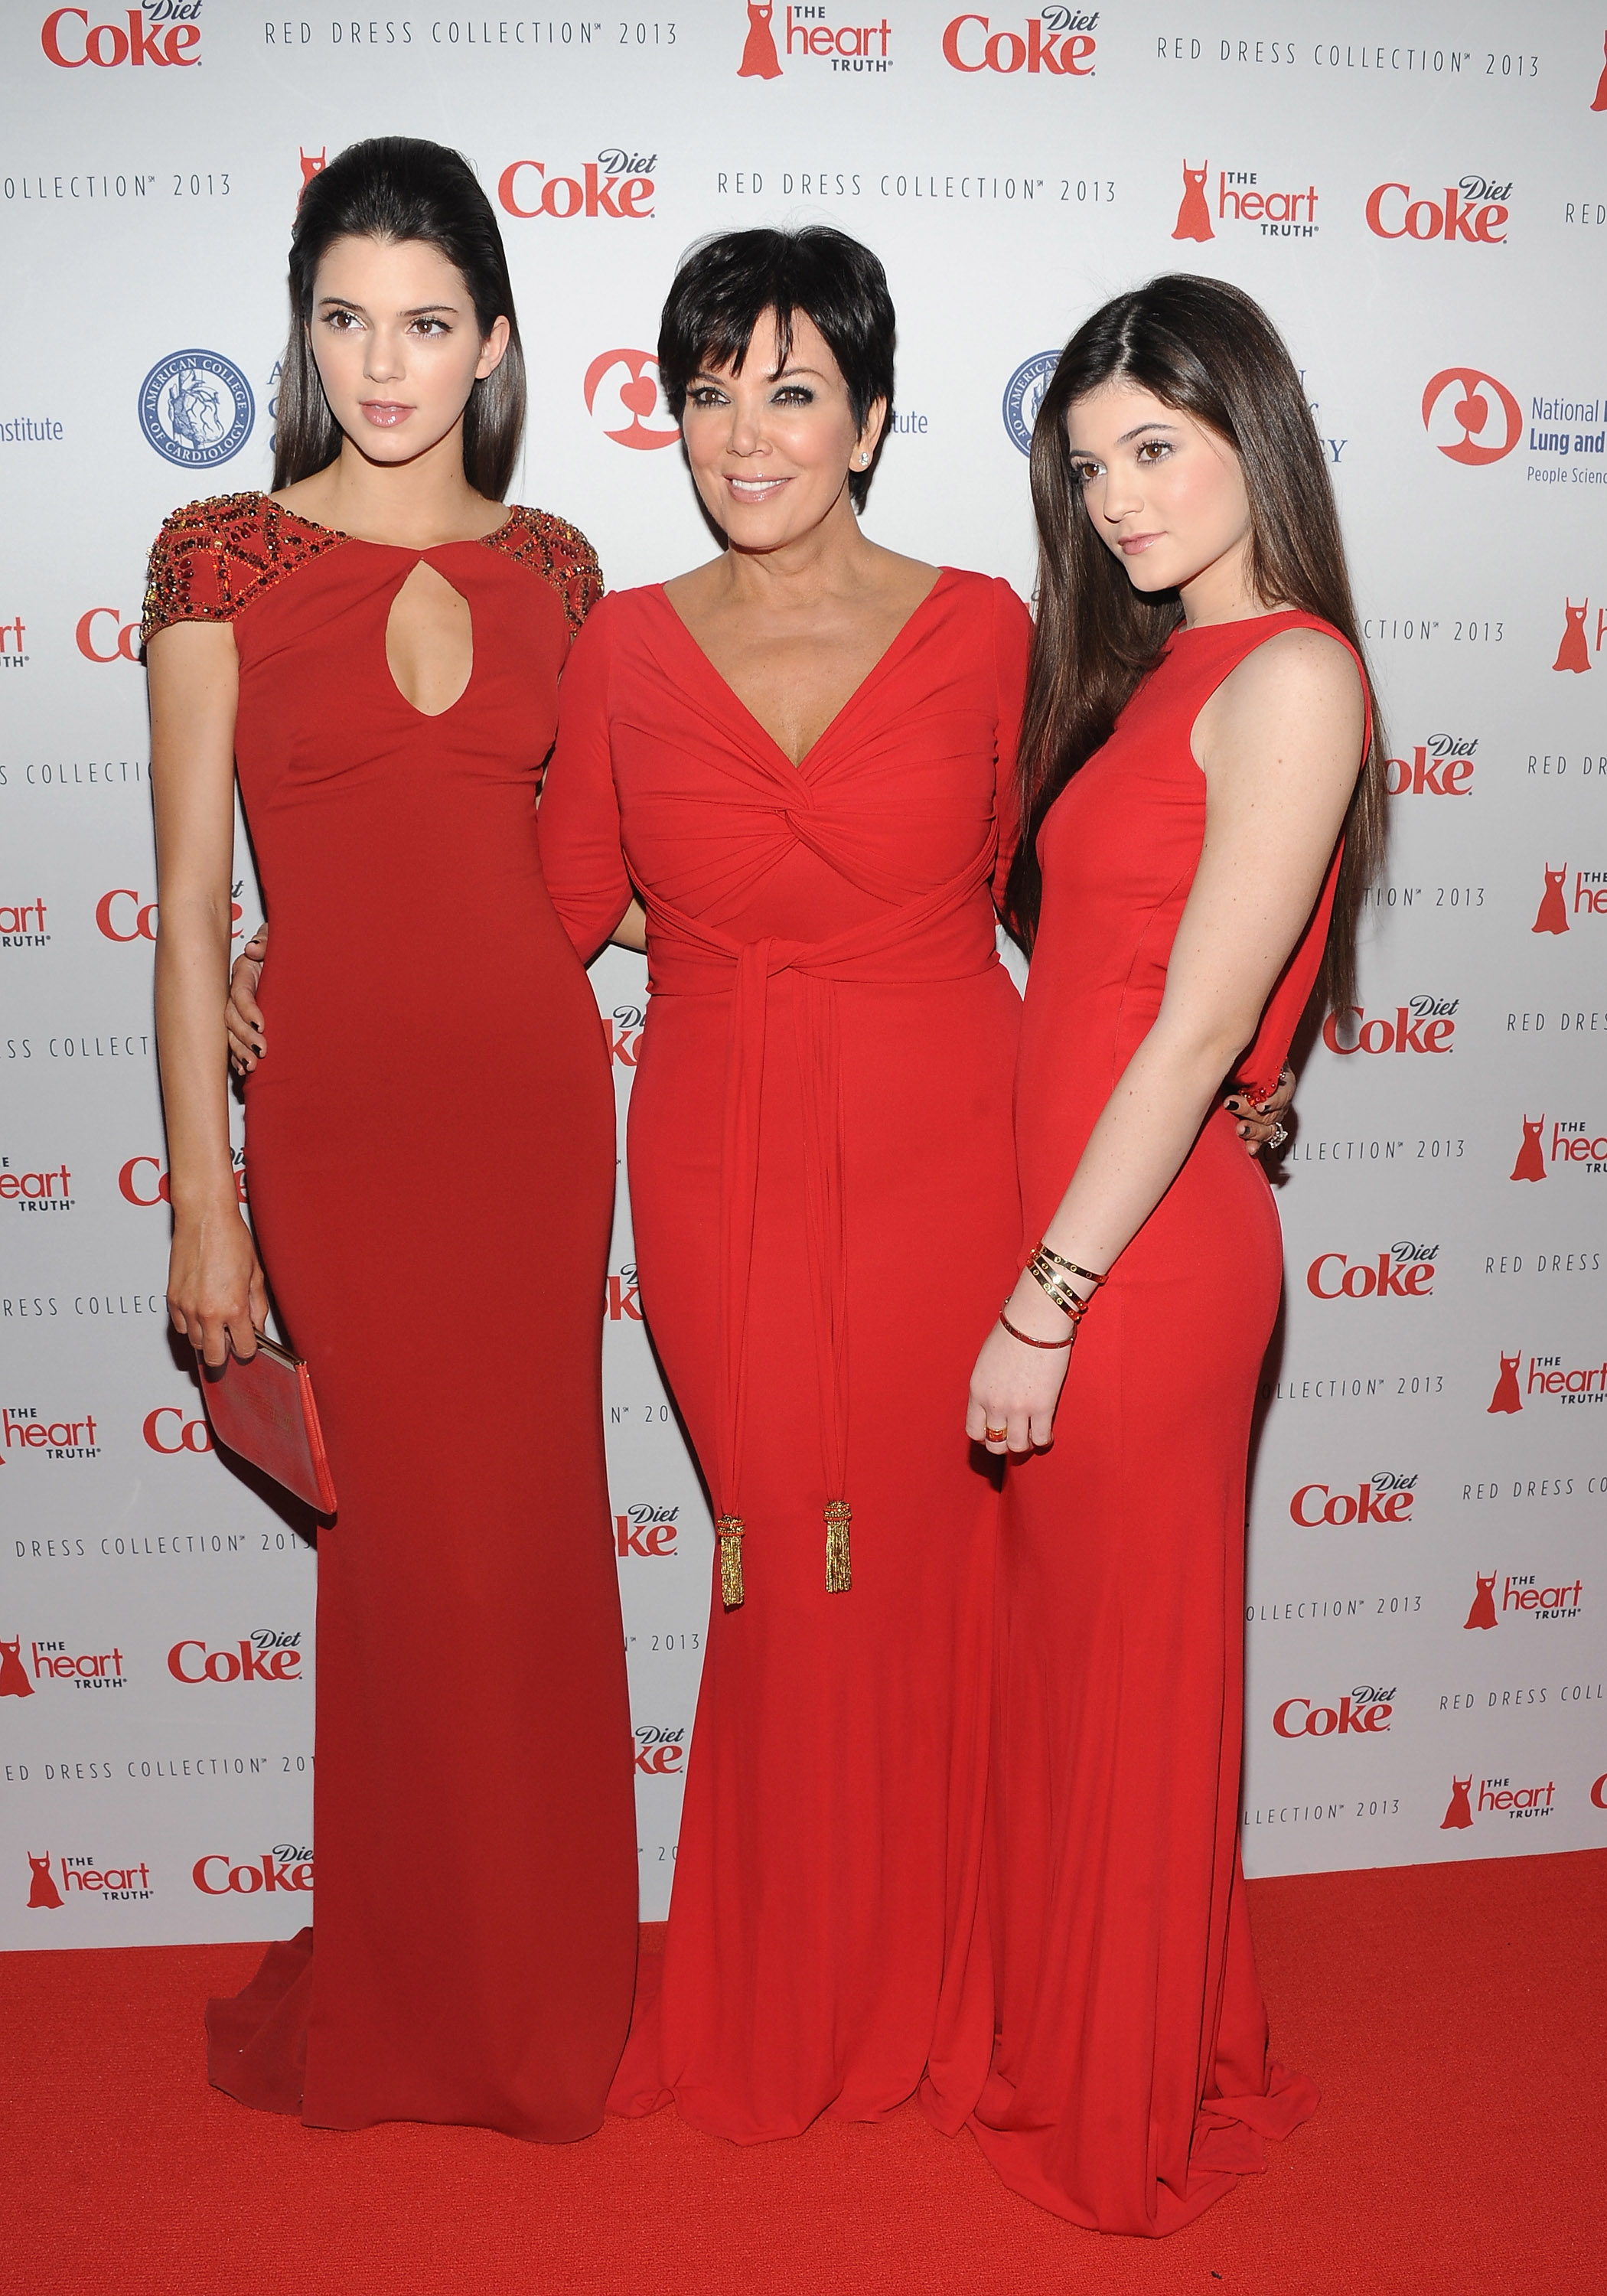 Kris Jenner posed with her daughters Kylie Jenner and Kendall Jenner before they all walked down the runway for The Heart Truth's Red Dress Collection fashion show on Wednesday.